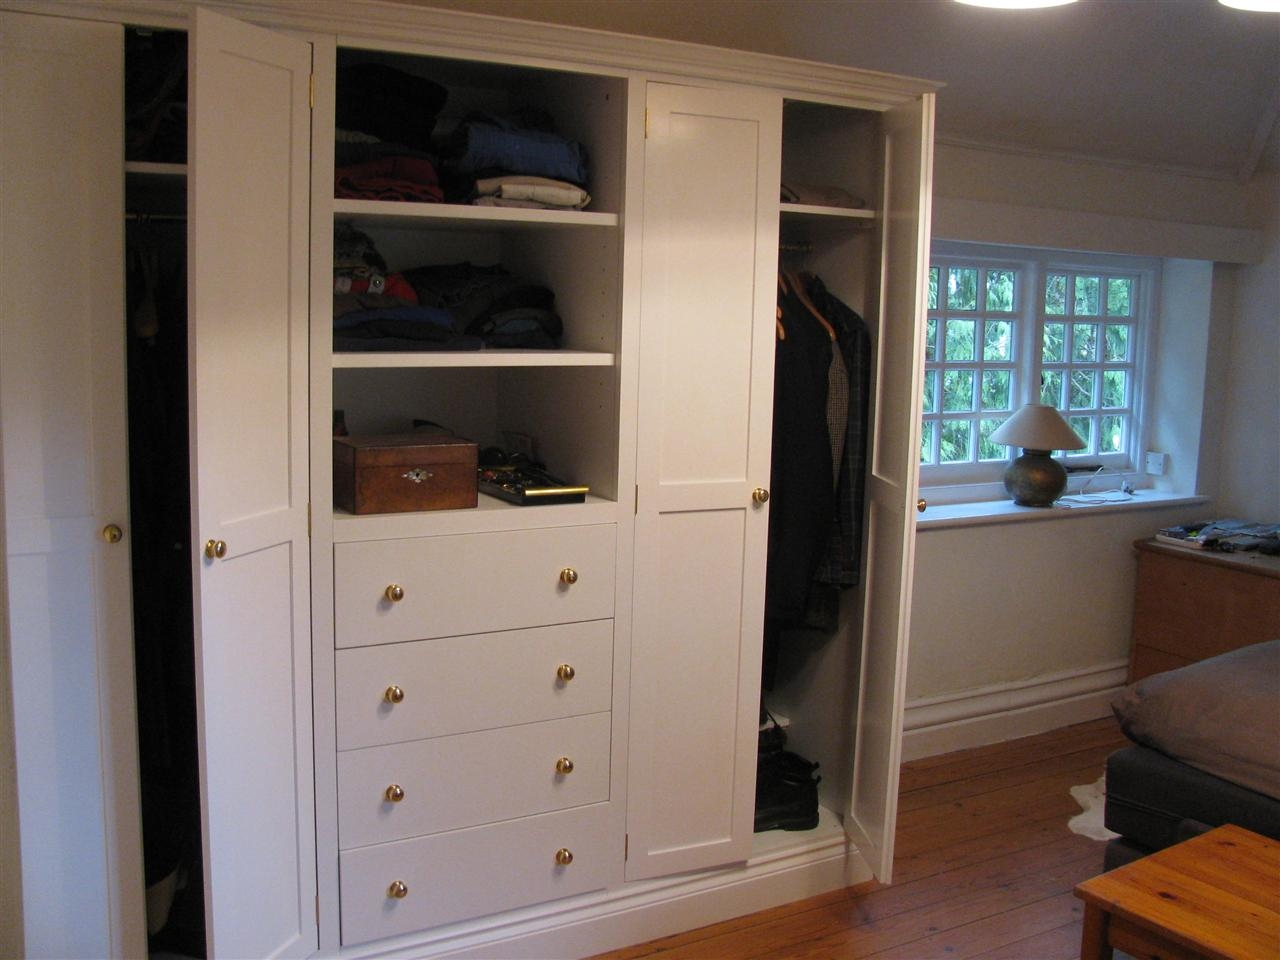 Wardrobes With Regard To Wardrobes With Shelves And Drawers (Image 14 of 15)